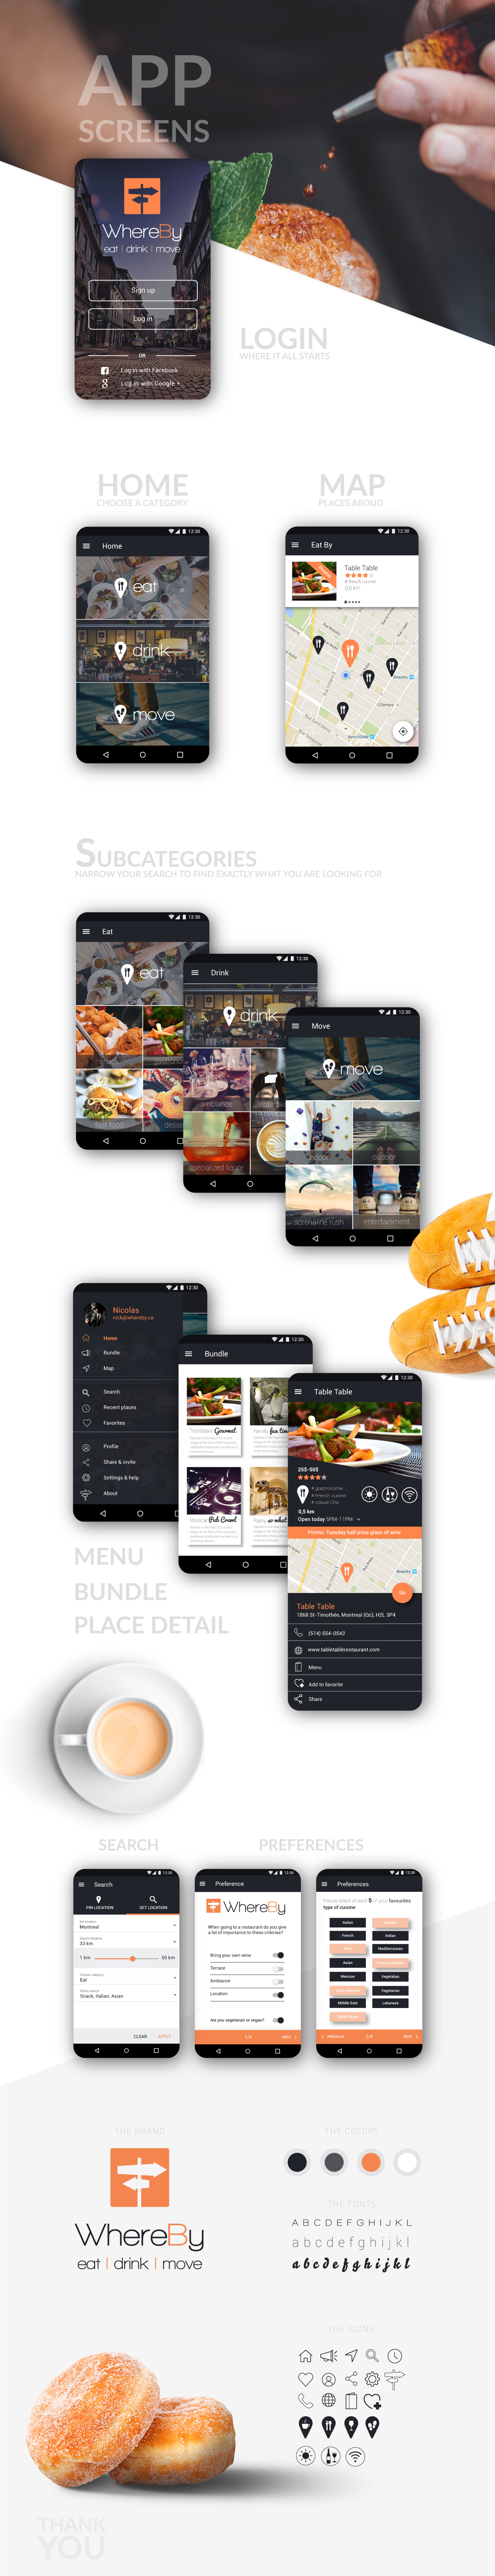 Mobile app android ux UI